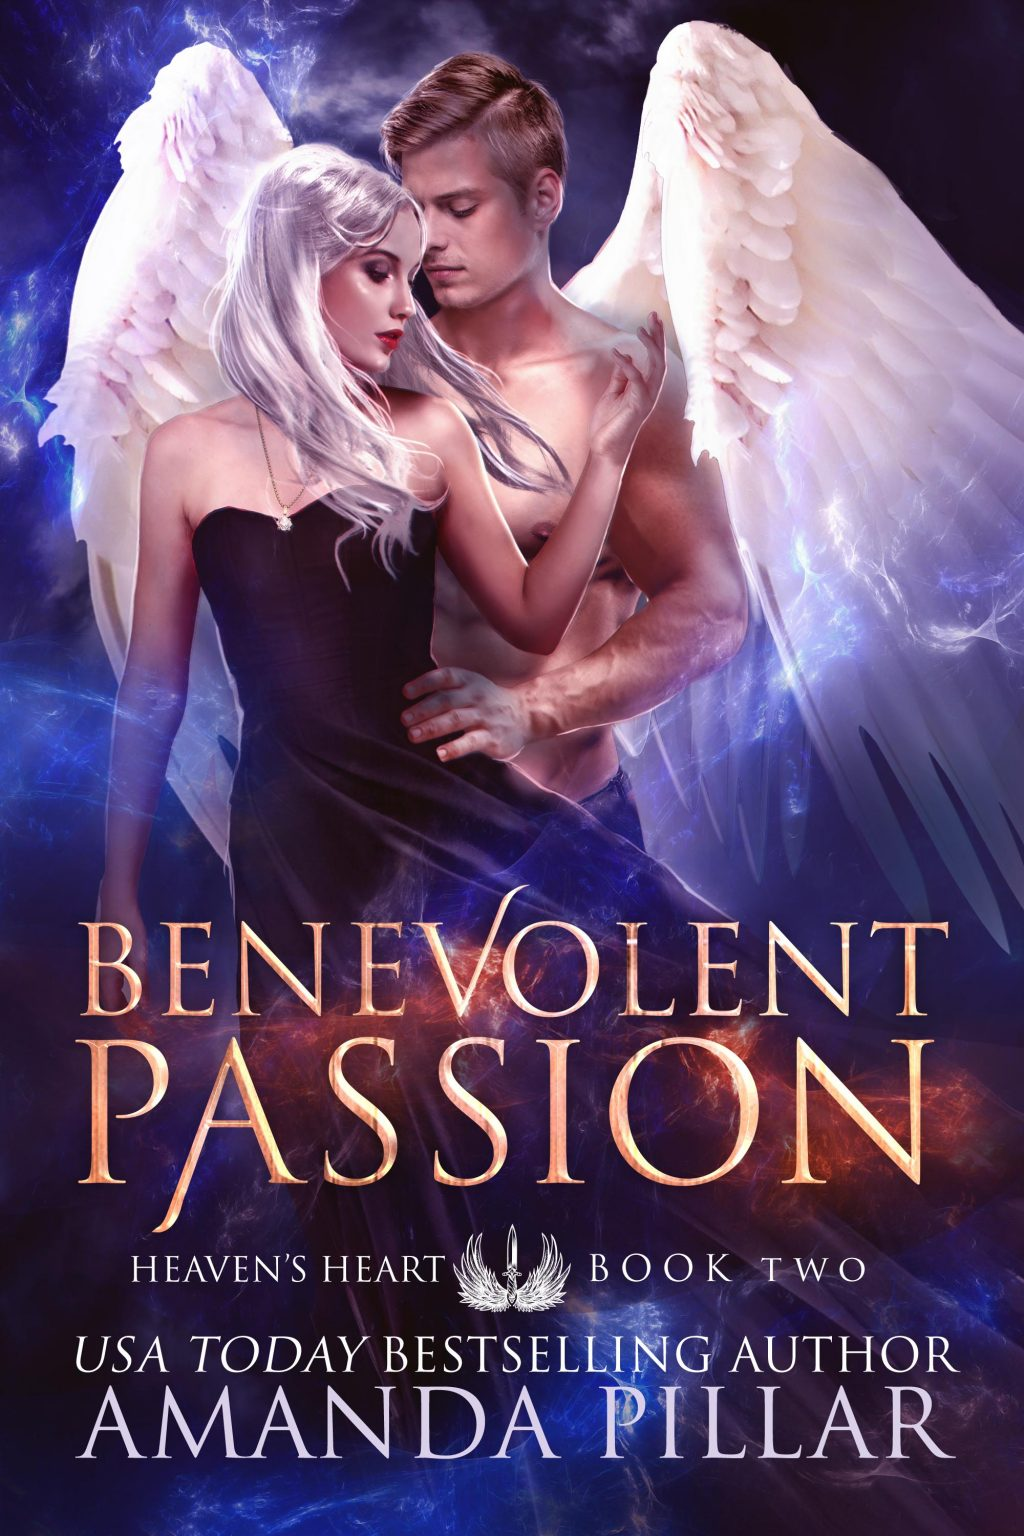 Benevolent Passion (Heaven's Heart #2) by Amanda Pillar